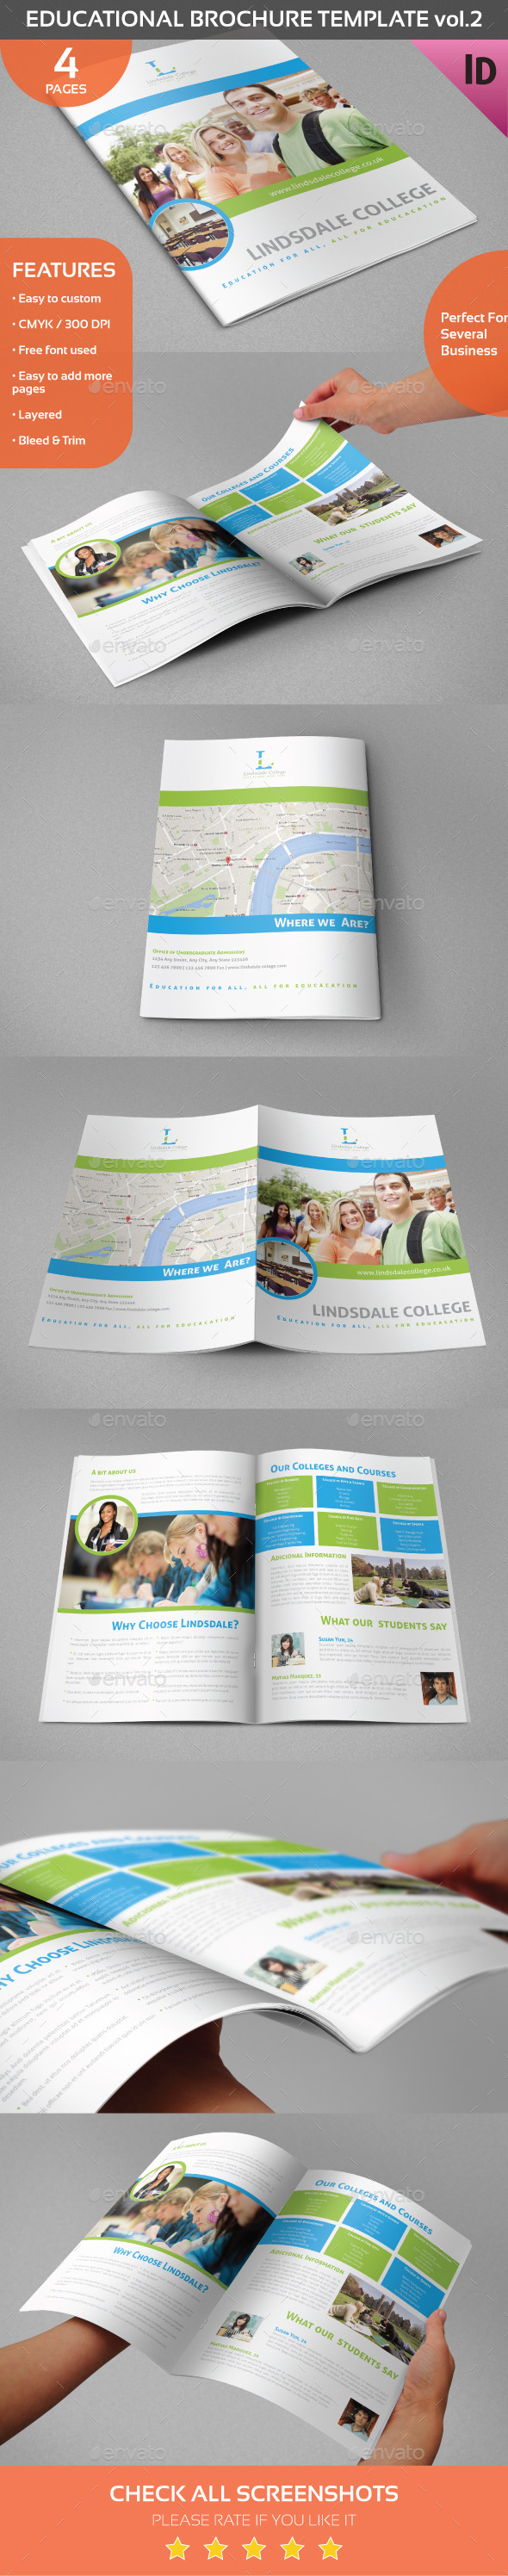 teaching brochures